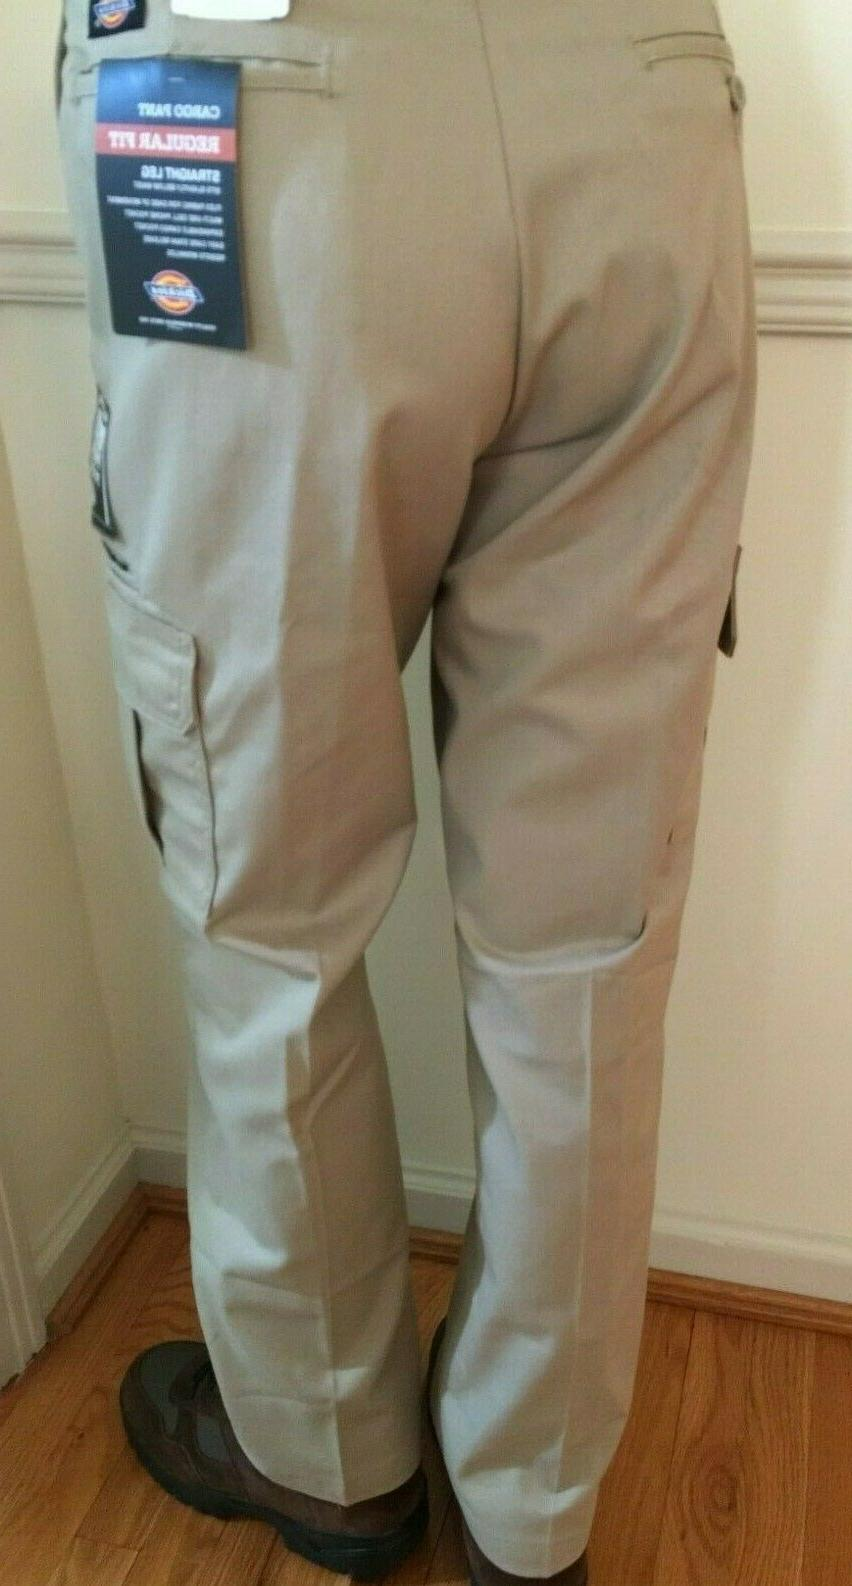 NWT MEN'S Flex DP Fit Work Pants Slacks